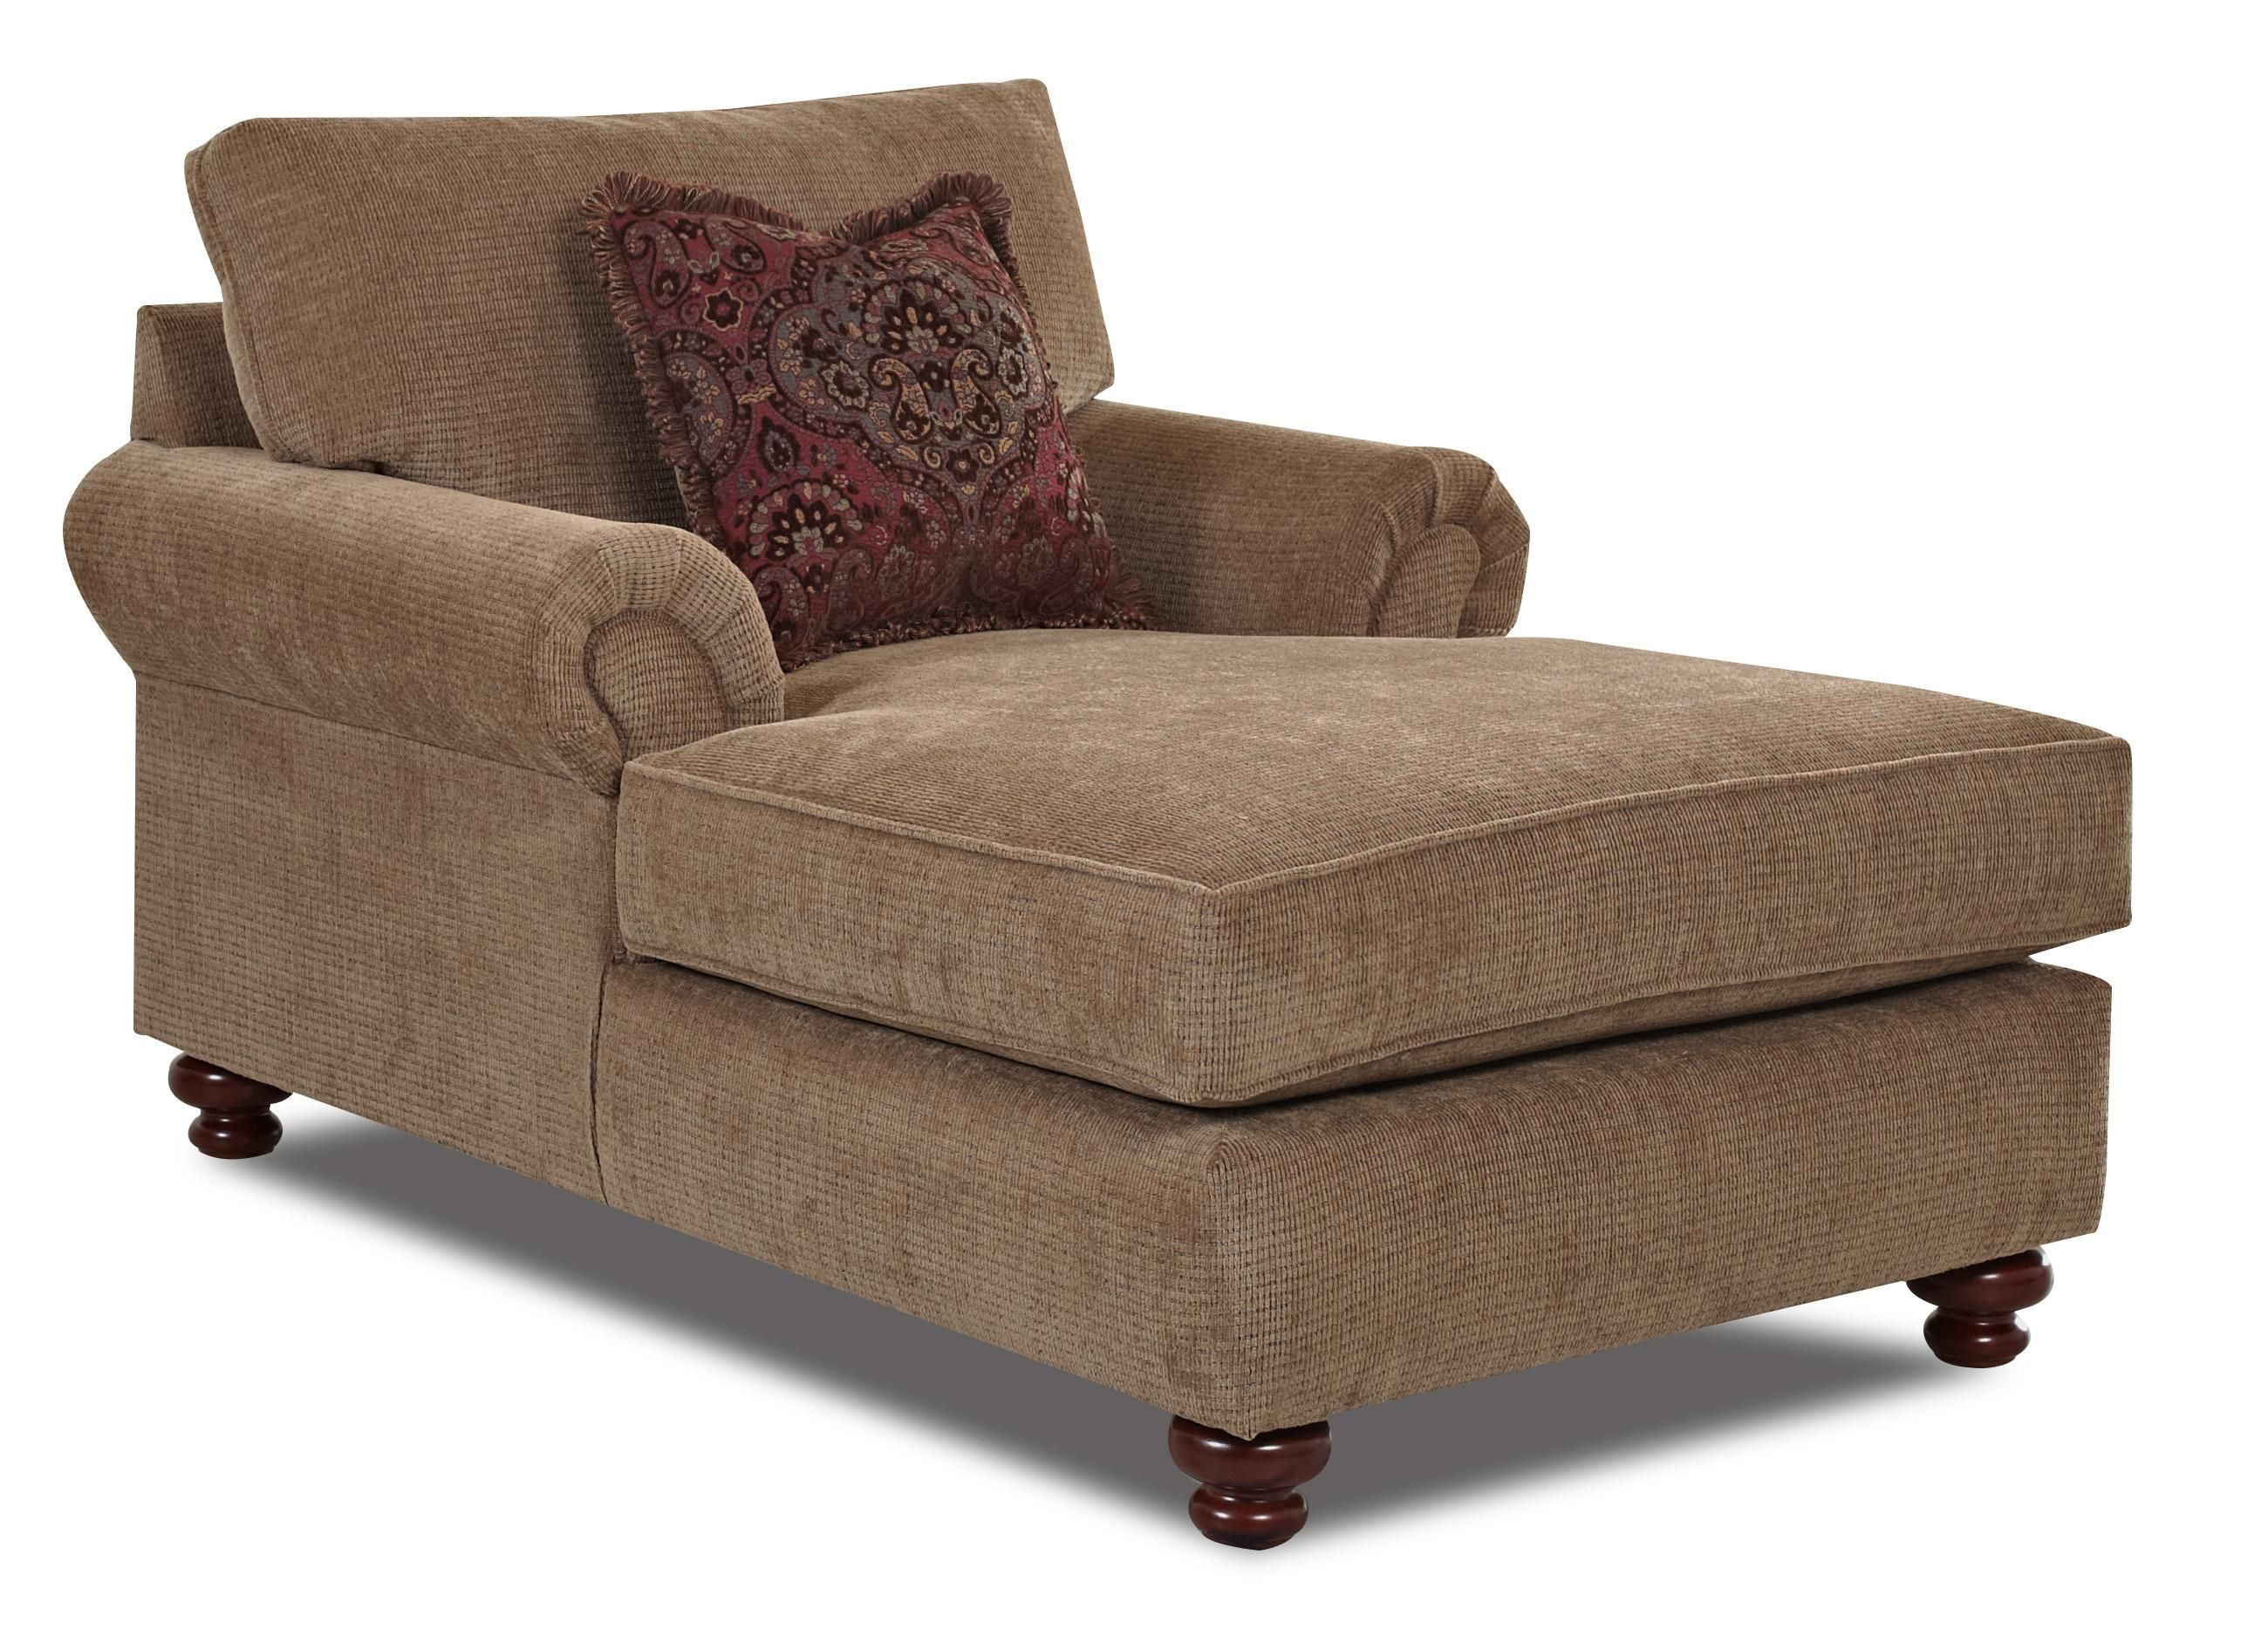 Greenvale Traditional Chaise Lounge by Klaussner  Wolf